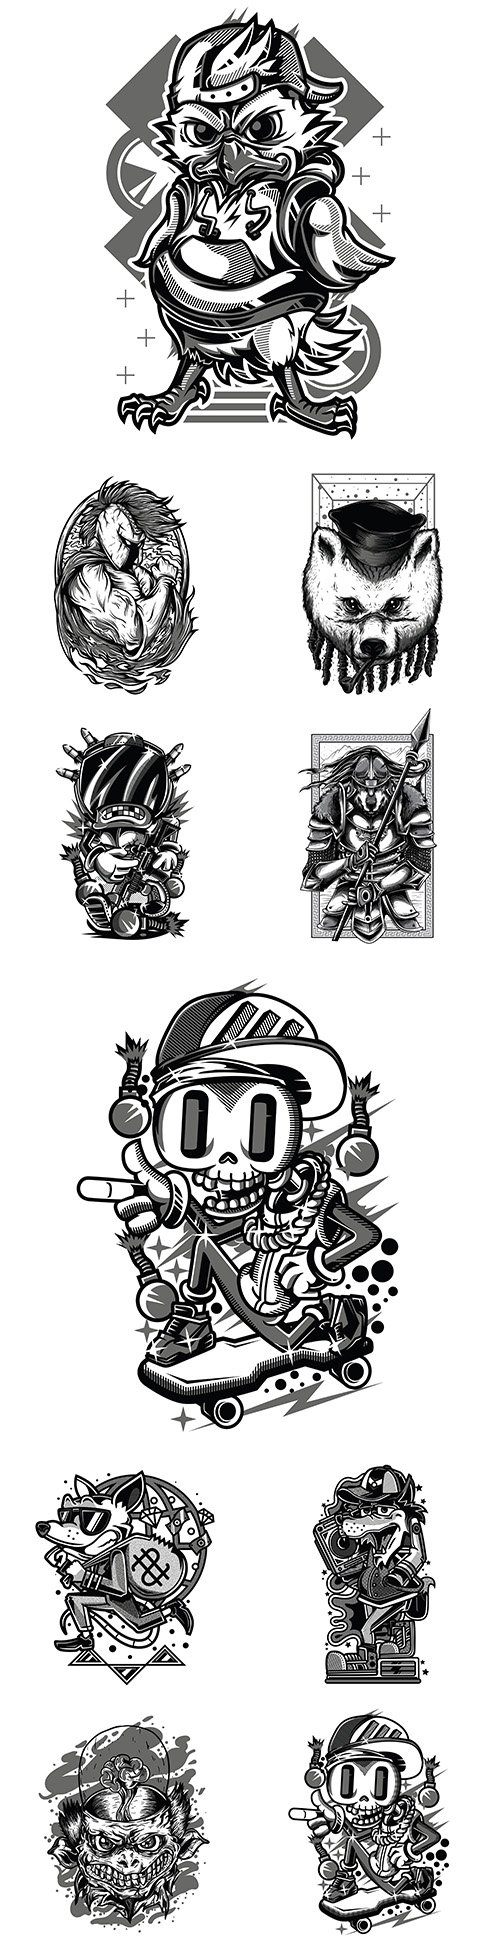 Drawing by hand emblem collection tattoo design